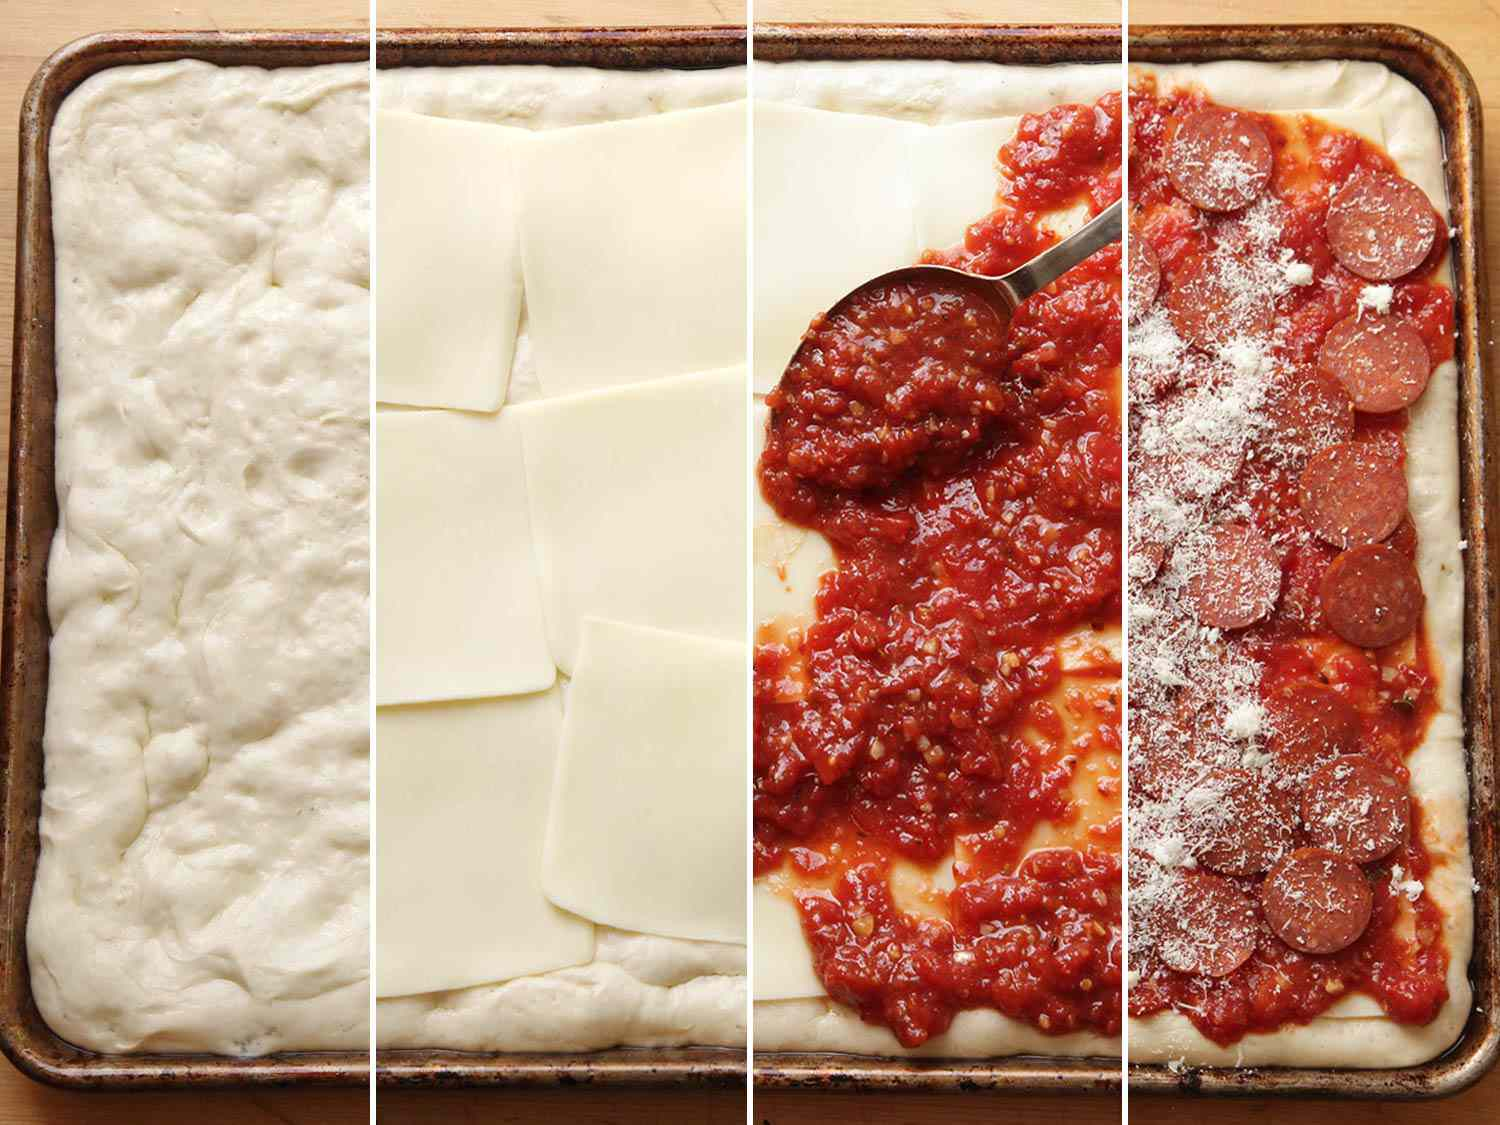 Collage of assembling a Sicilian-style pizza in the proper order, with cheese underneath the sauce.